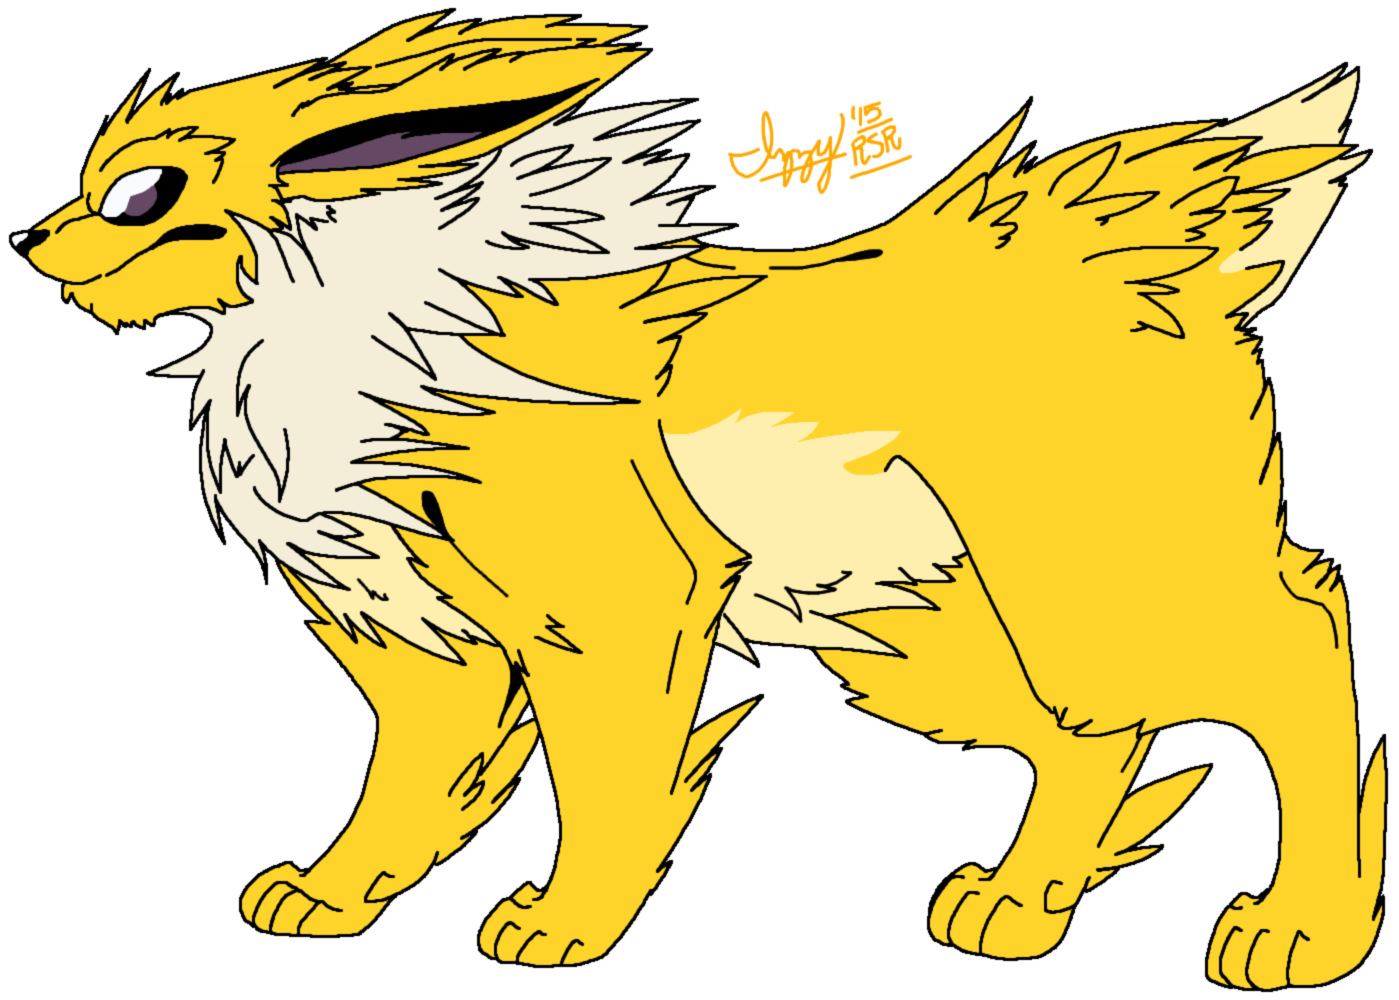 .:Jolteon, the Warrior of Fluff and Thunder!:. by RaineSageRocks